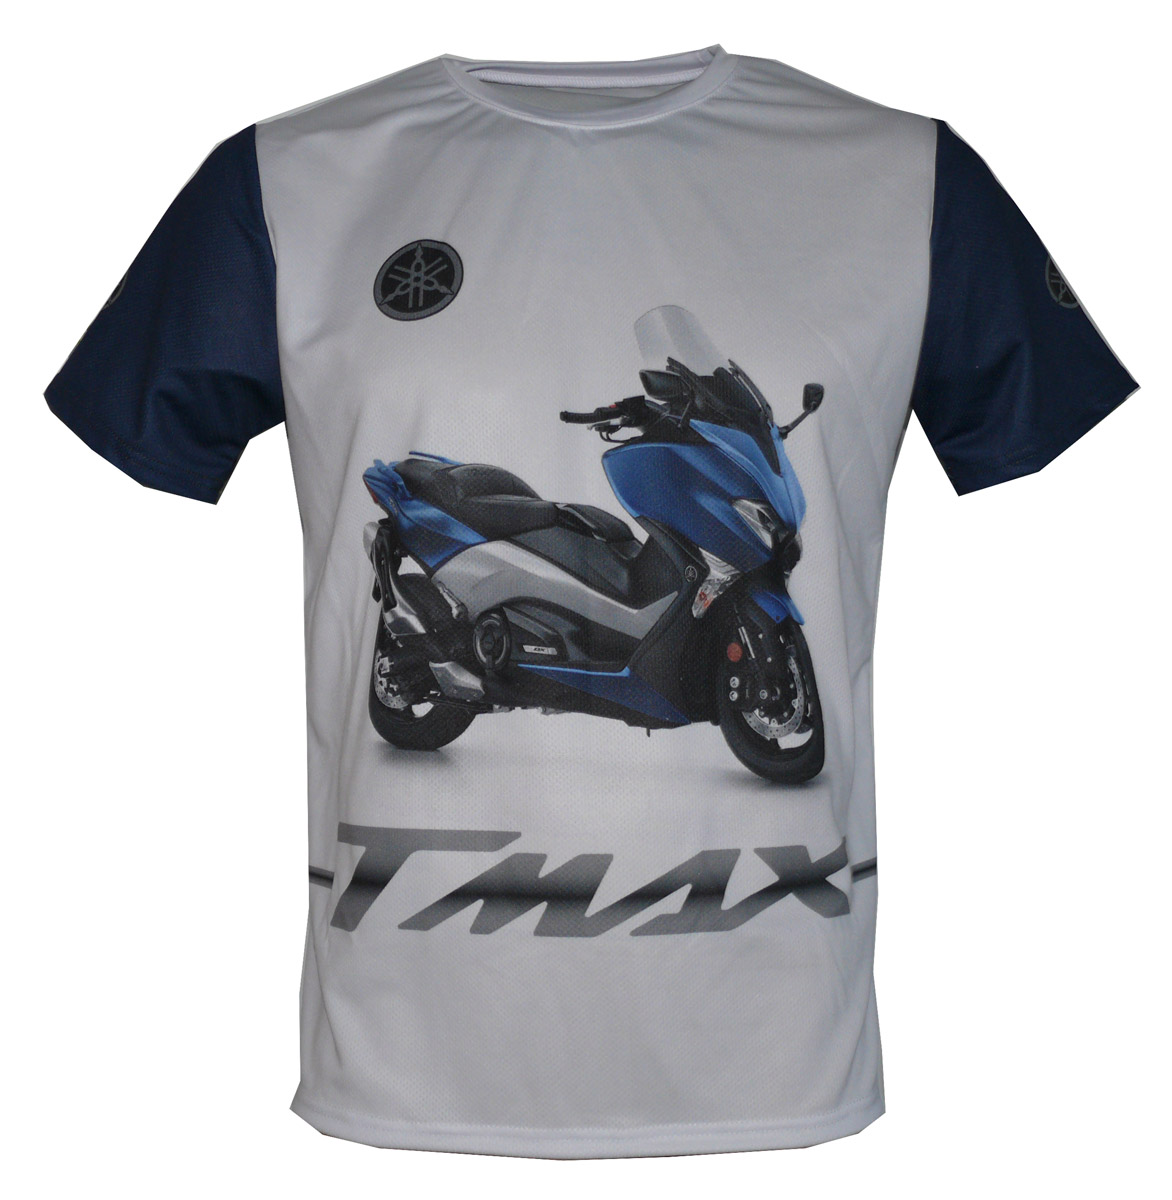 yamaha t max 2017 t shirt with logo and all over printed. Black Bedroom Furniture Sets. Home Design Ideas